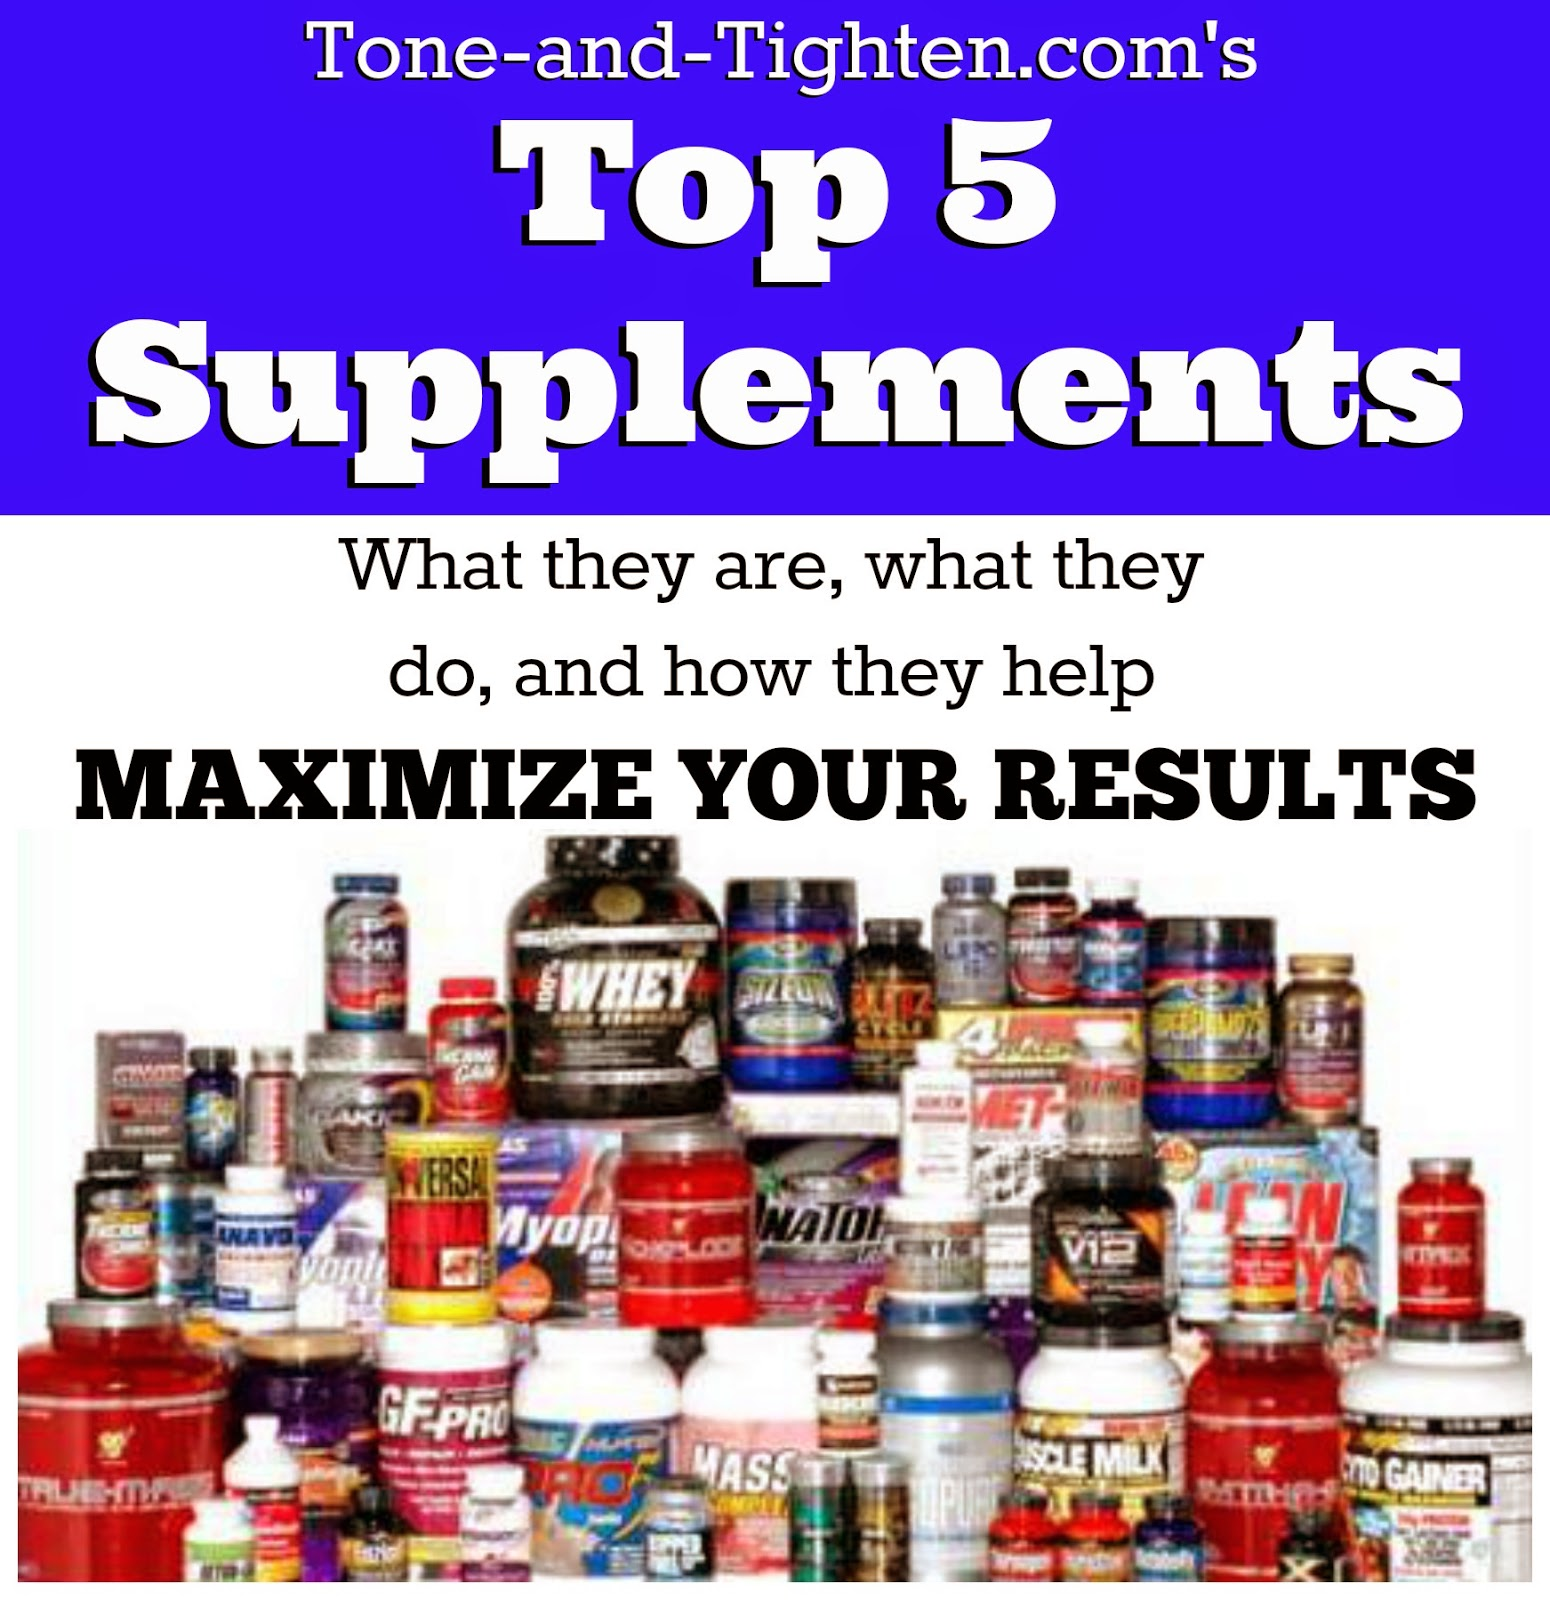 With So Many Workout Supplements Out There How Do I Know Which One S Should Be Taking